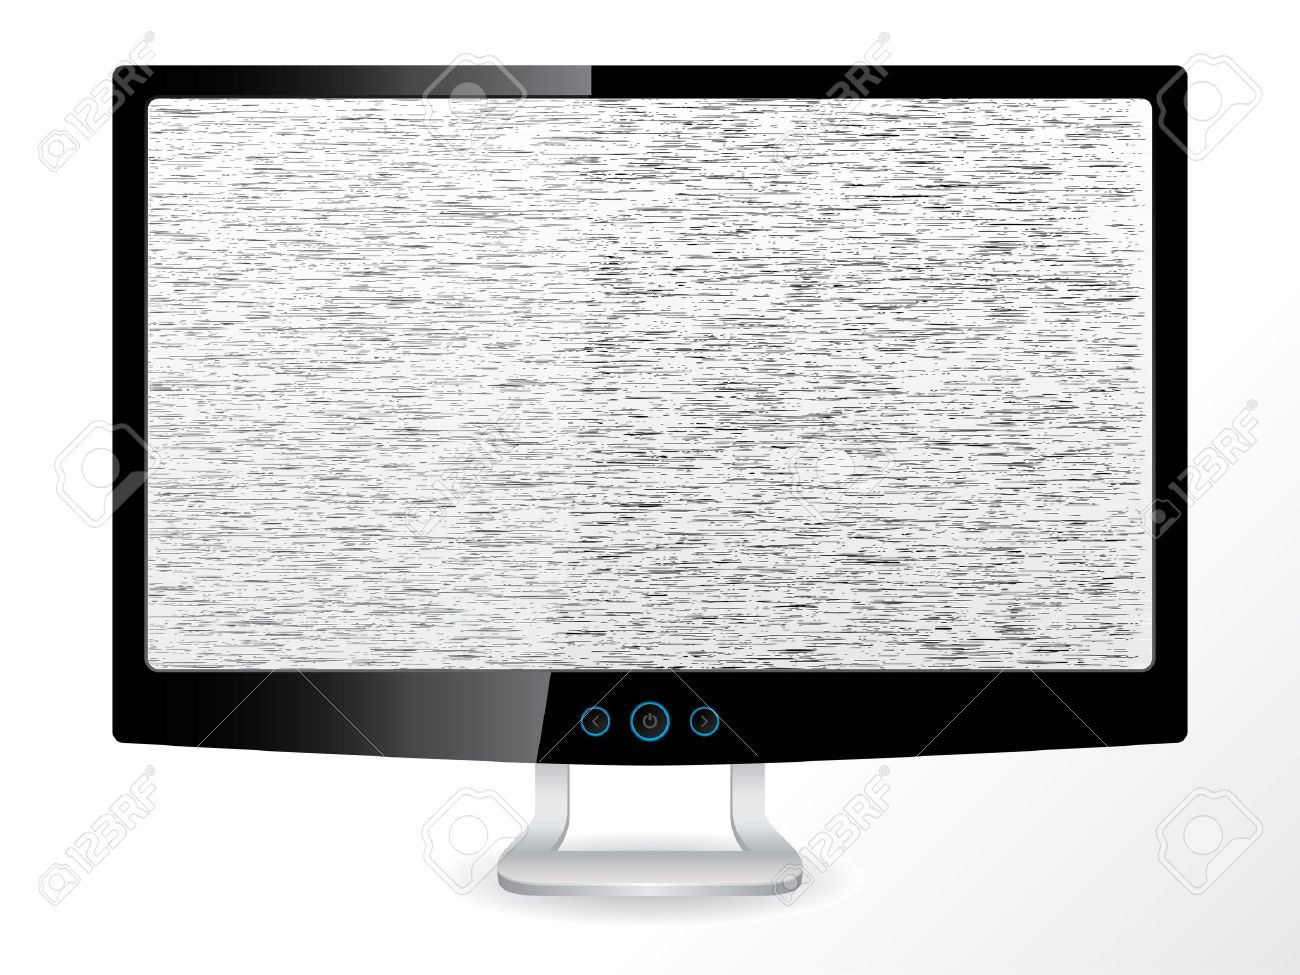 LCD tv/monitor with no signal on white background